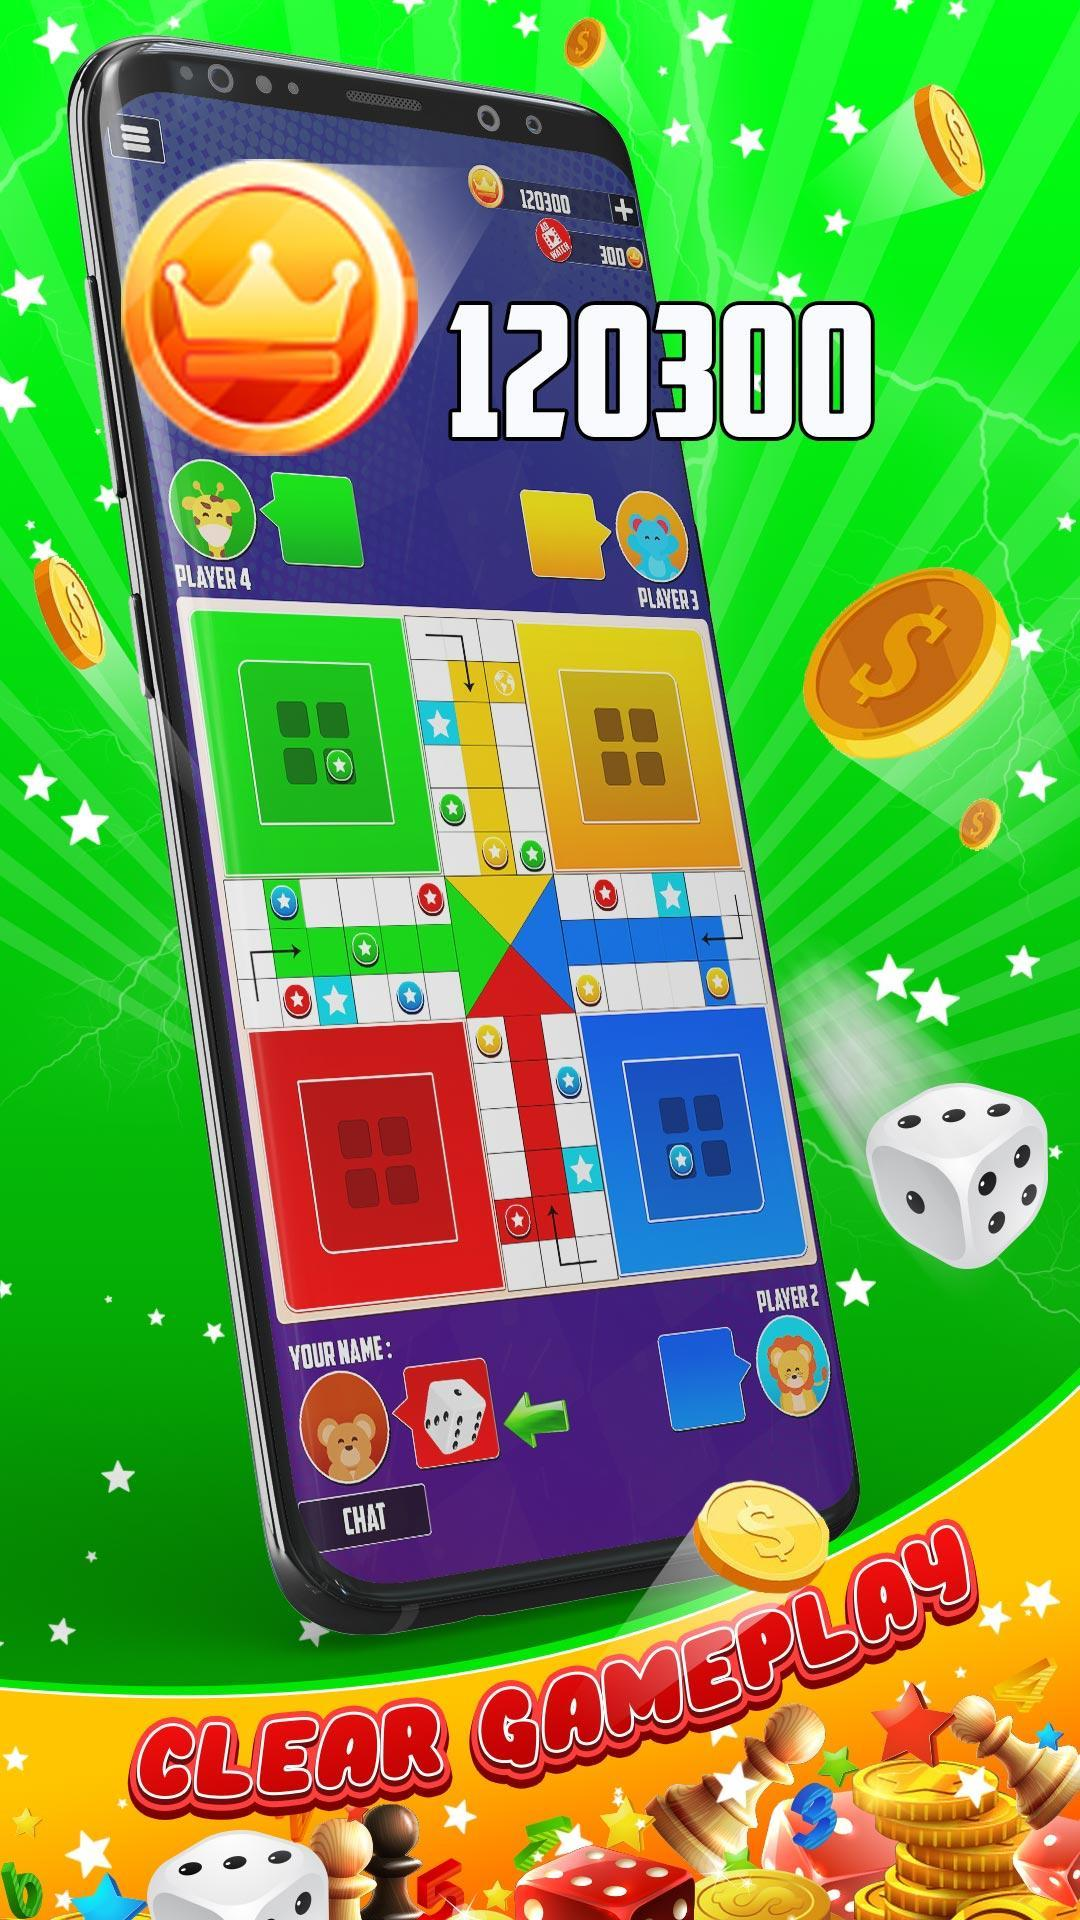 King of Ludo Dice Game with Free Voice Chat 2020 1.5.2 Screenshot 3